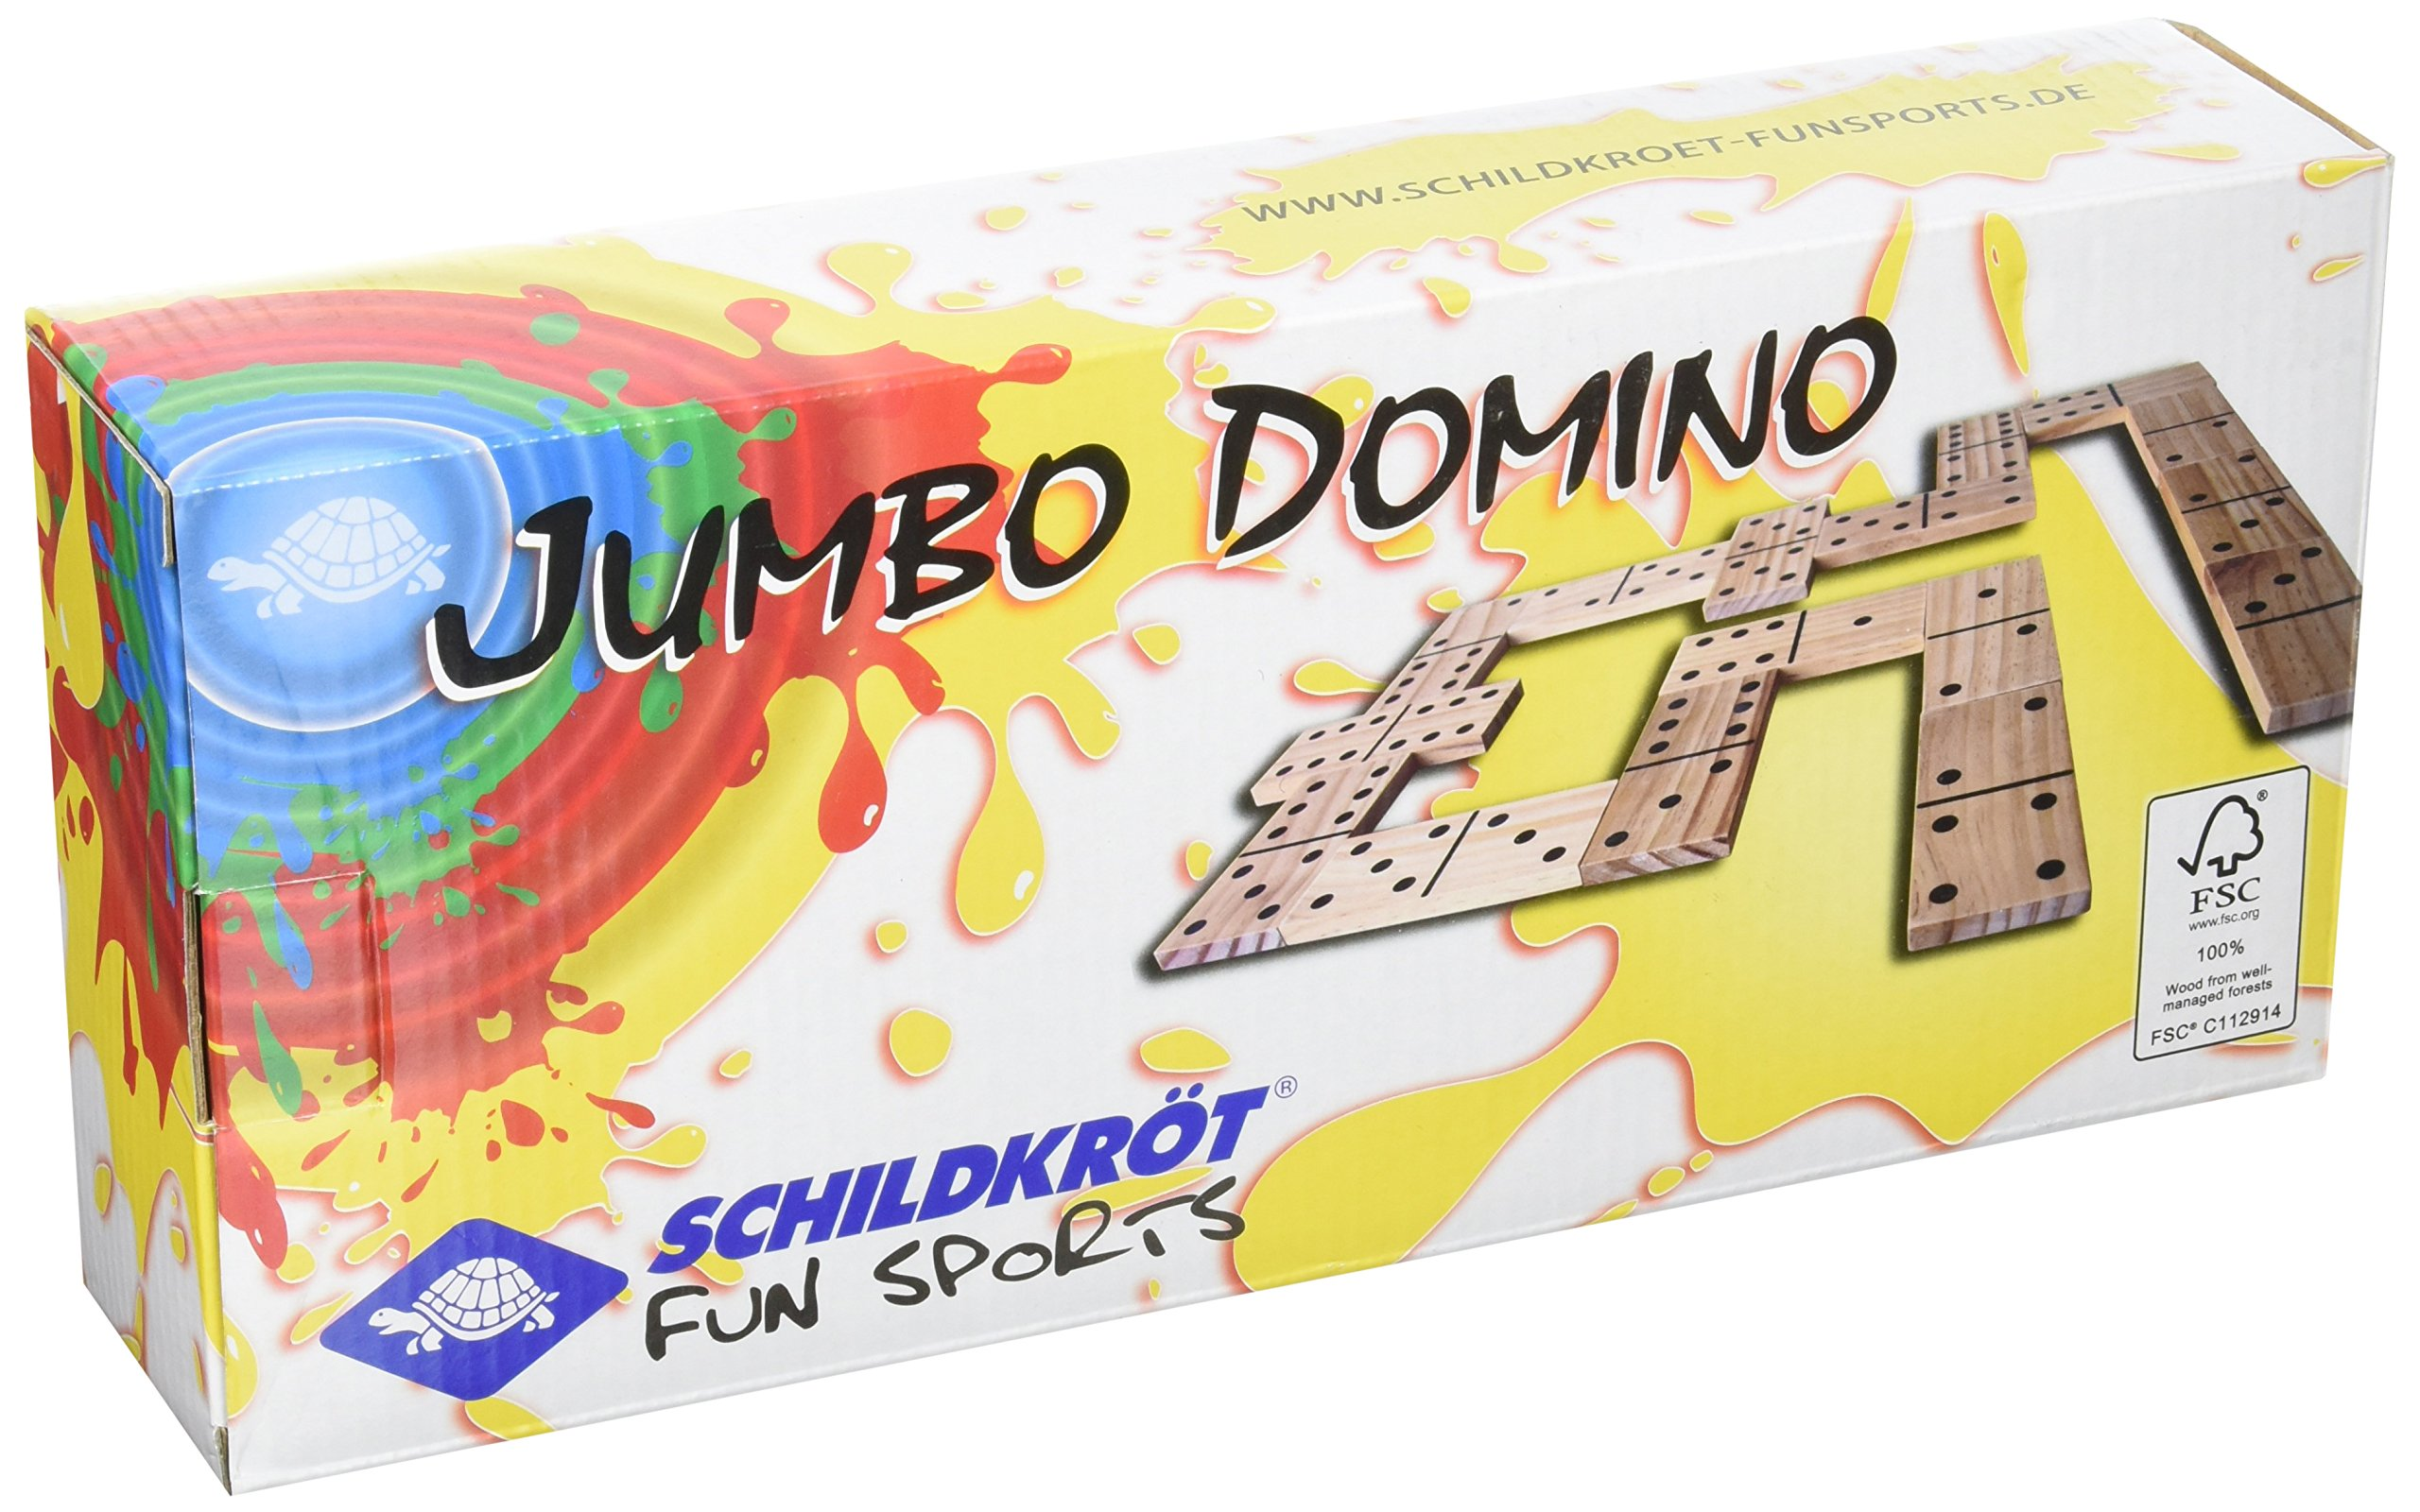 Schildkr?t Fun Sports Schildkrot Fun Sports Jumbo Domino - Brown by